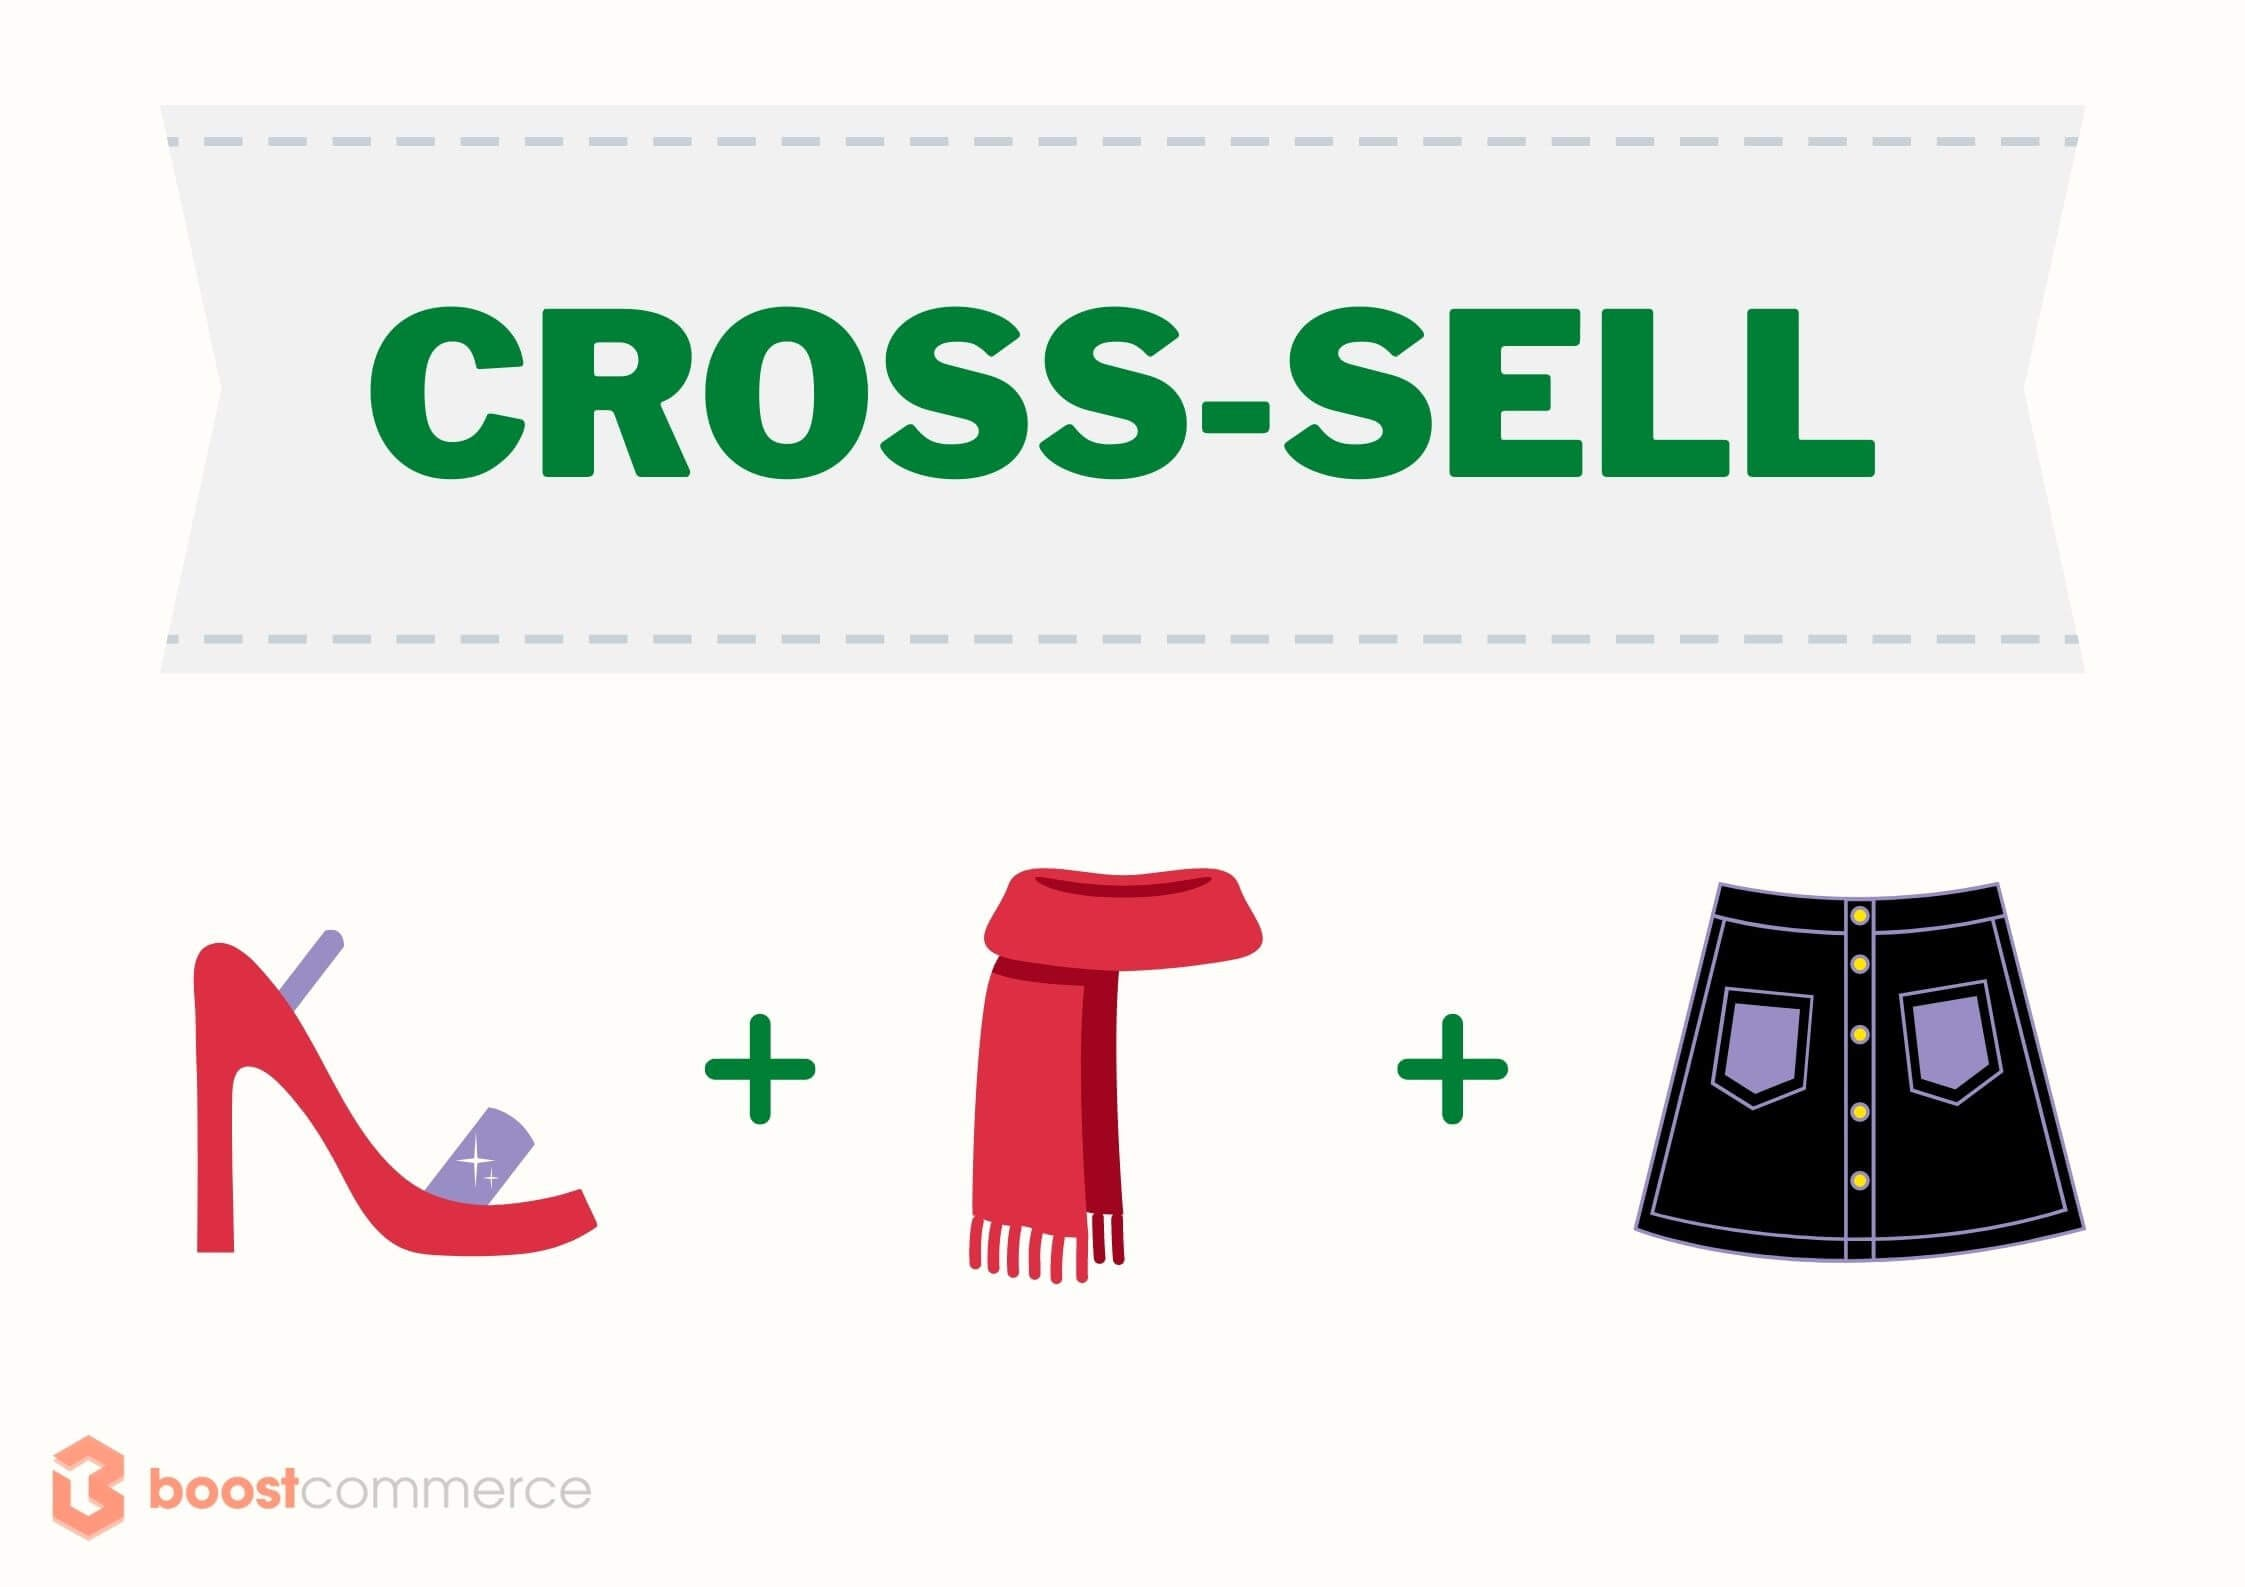 cross sell definition boost commerce